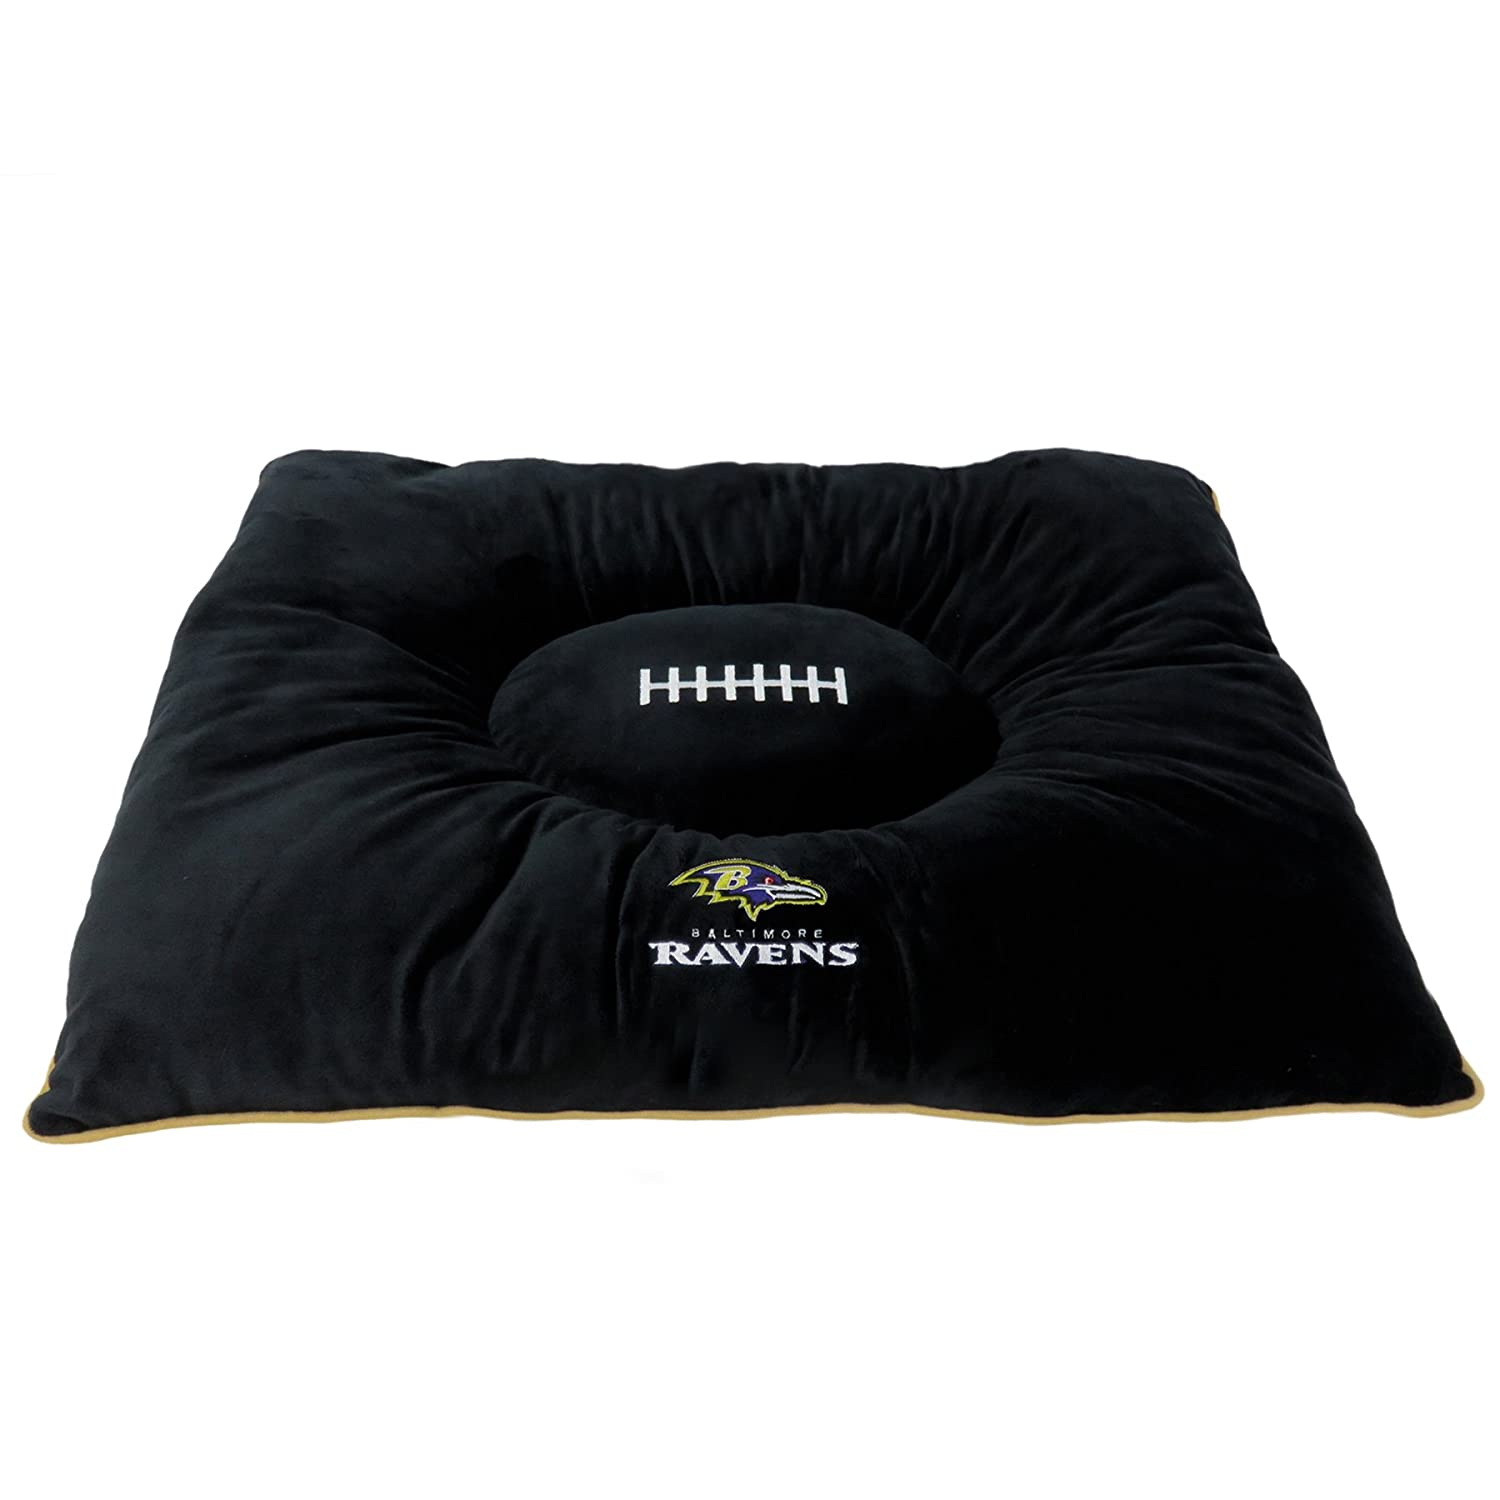 NFL PET Bed Baltimore Ravens Soft & Cozy Plush Pillow Bed. Football Dog Bed. Cuddle, Warm Sports Mattress Bed for Cats & Dogs